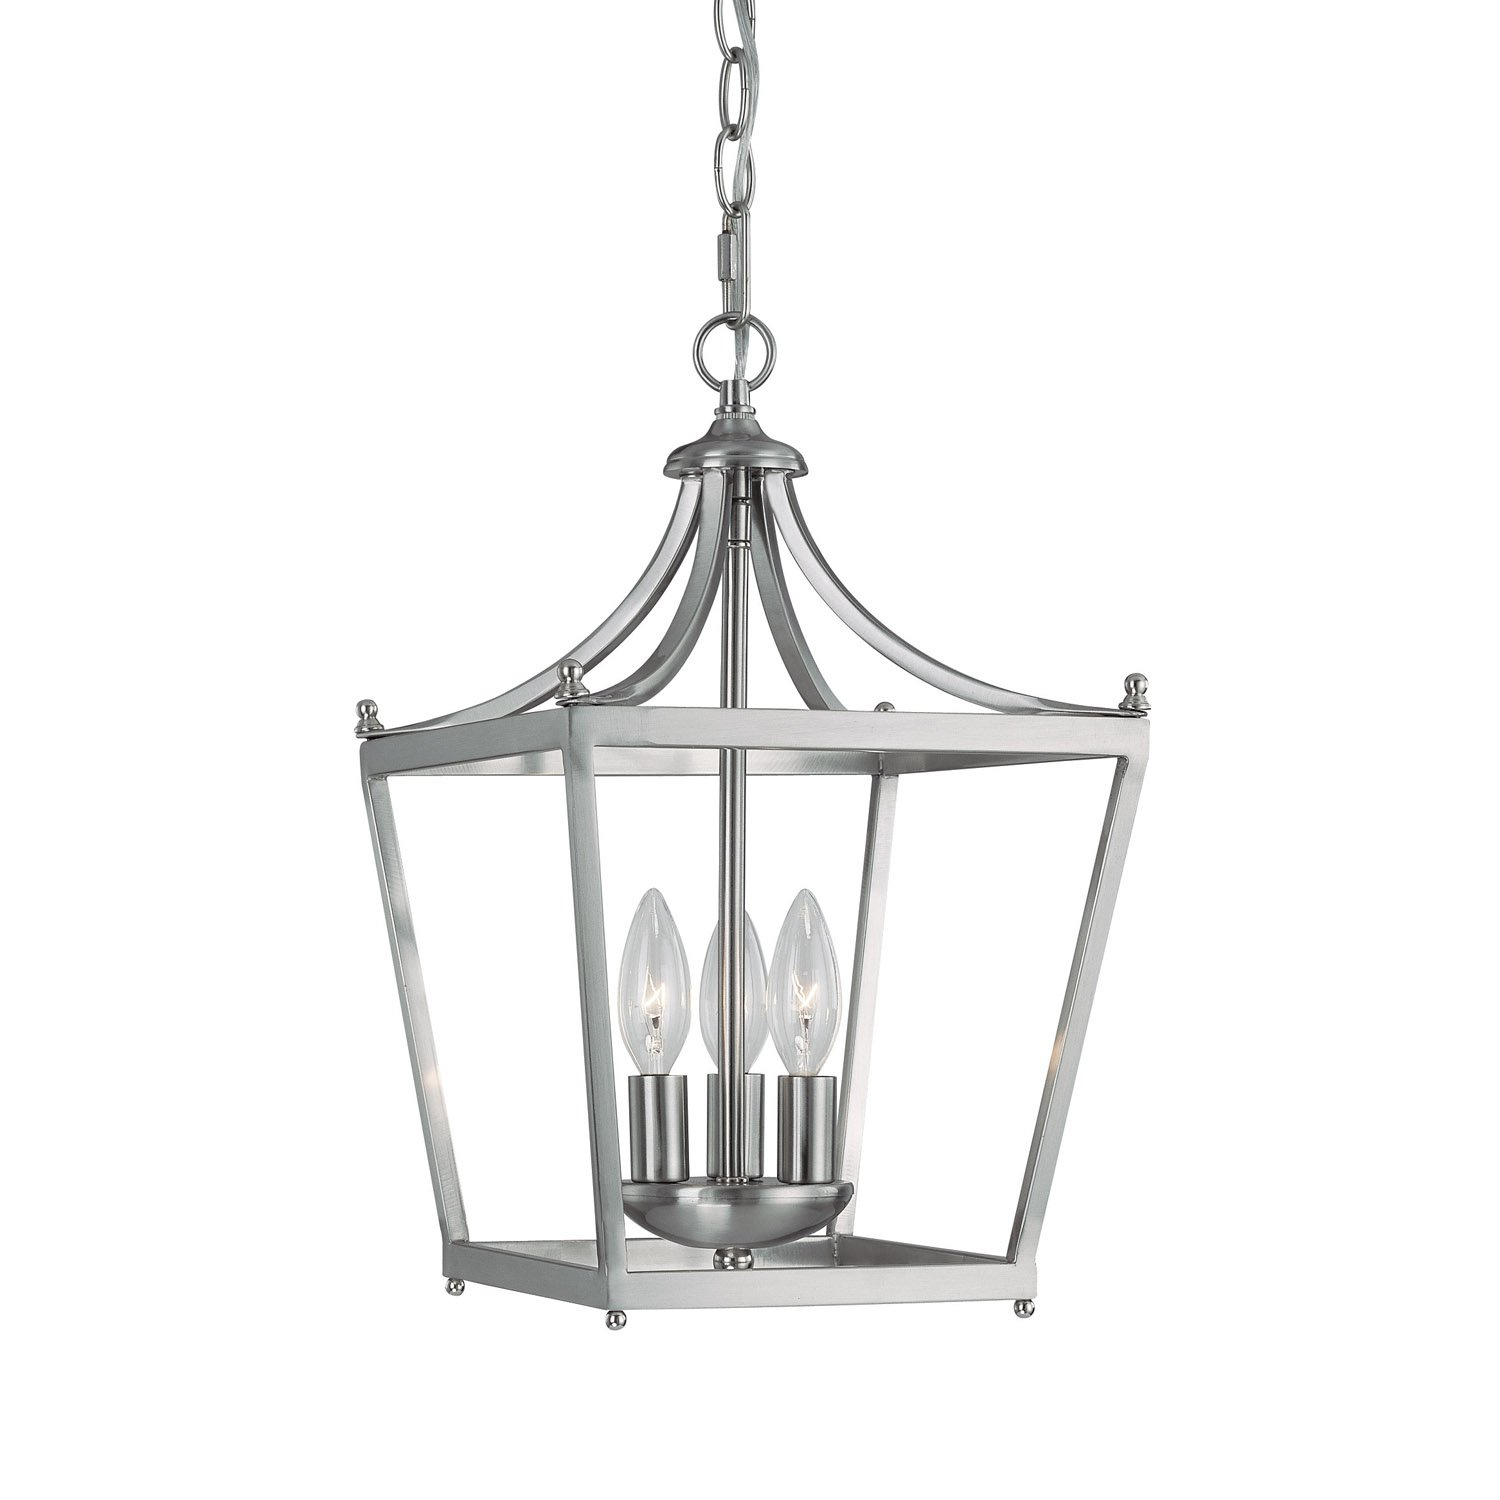 quoizel glass crystal image chandelier light capitol clear cfm lighting item magnifying brushed holder large finish orion in shown inch pendant candle accent and wide nickel